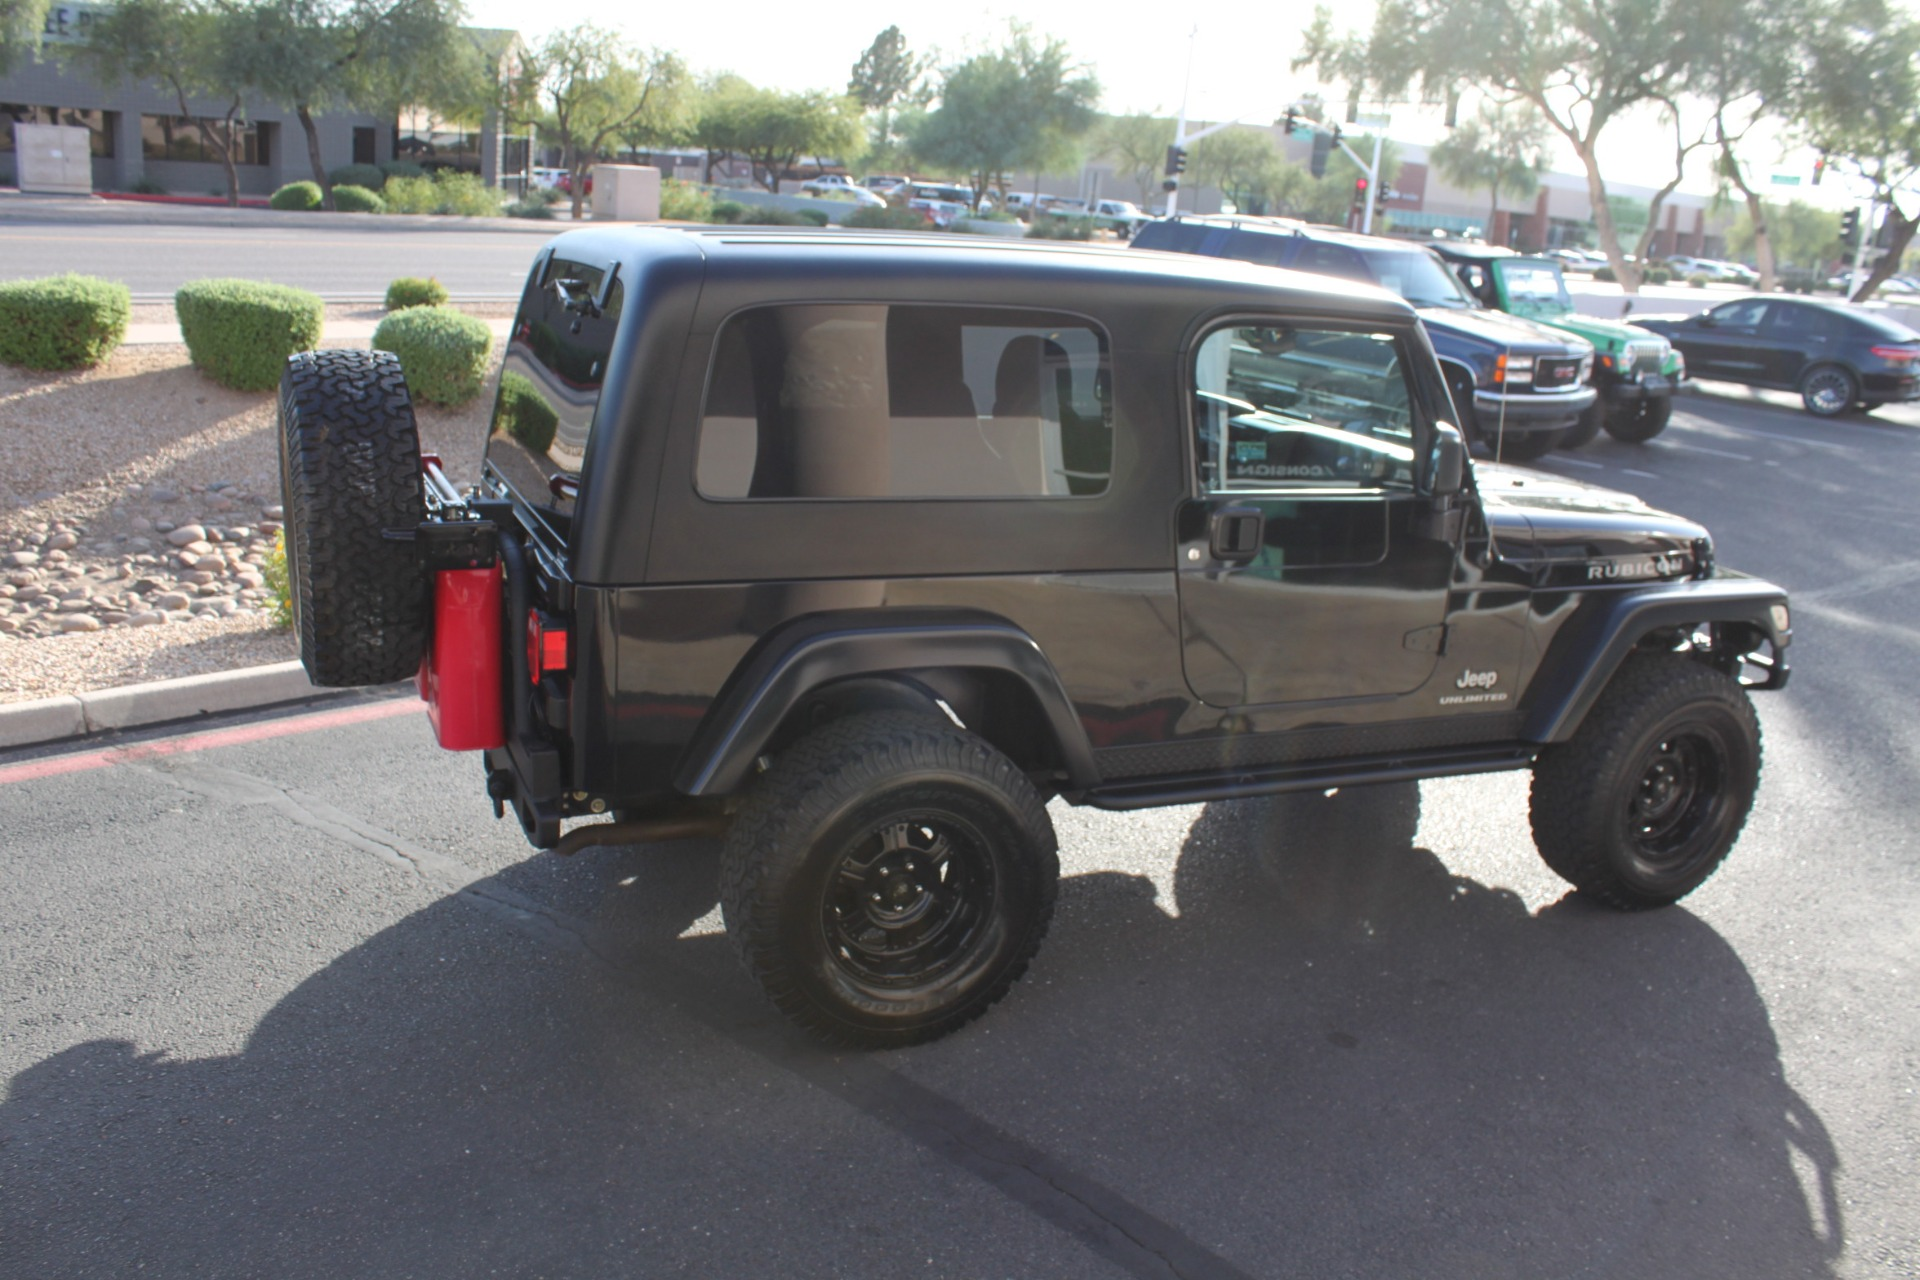 Used-2006-Jeep-Wrangler-Unlimited-Rubicon-LWB-Alfa-Romeo